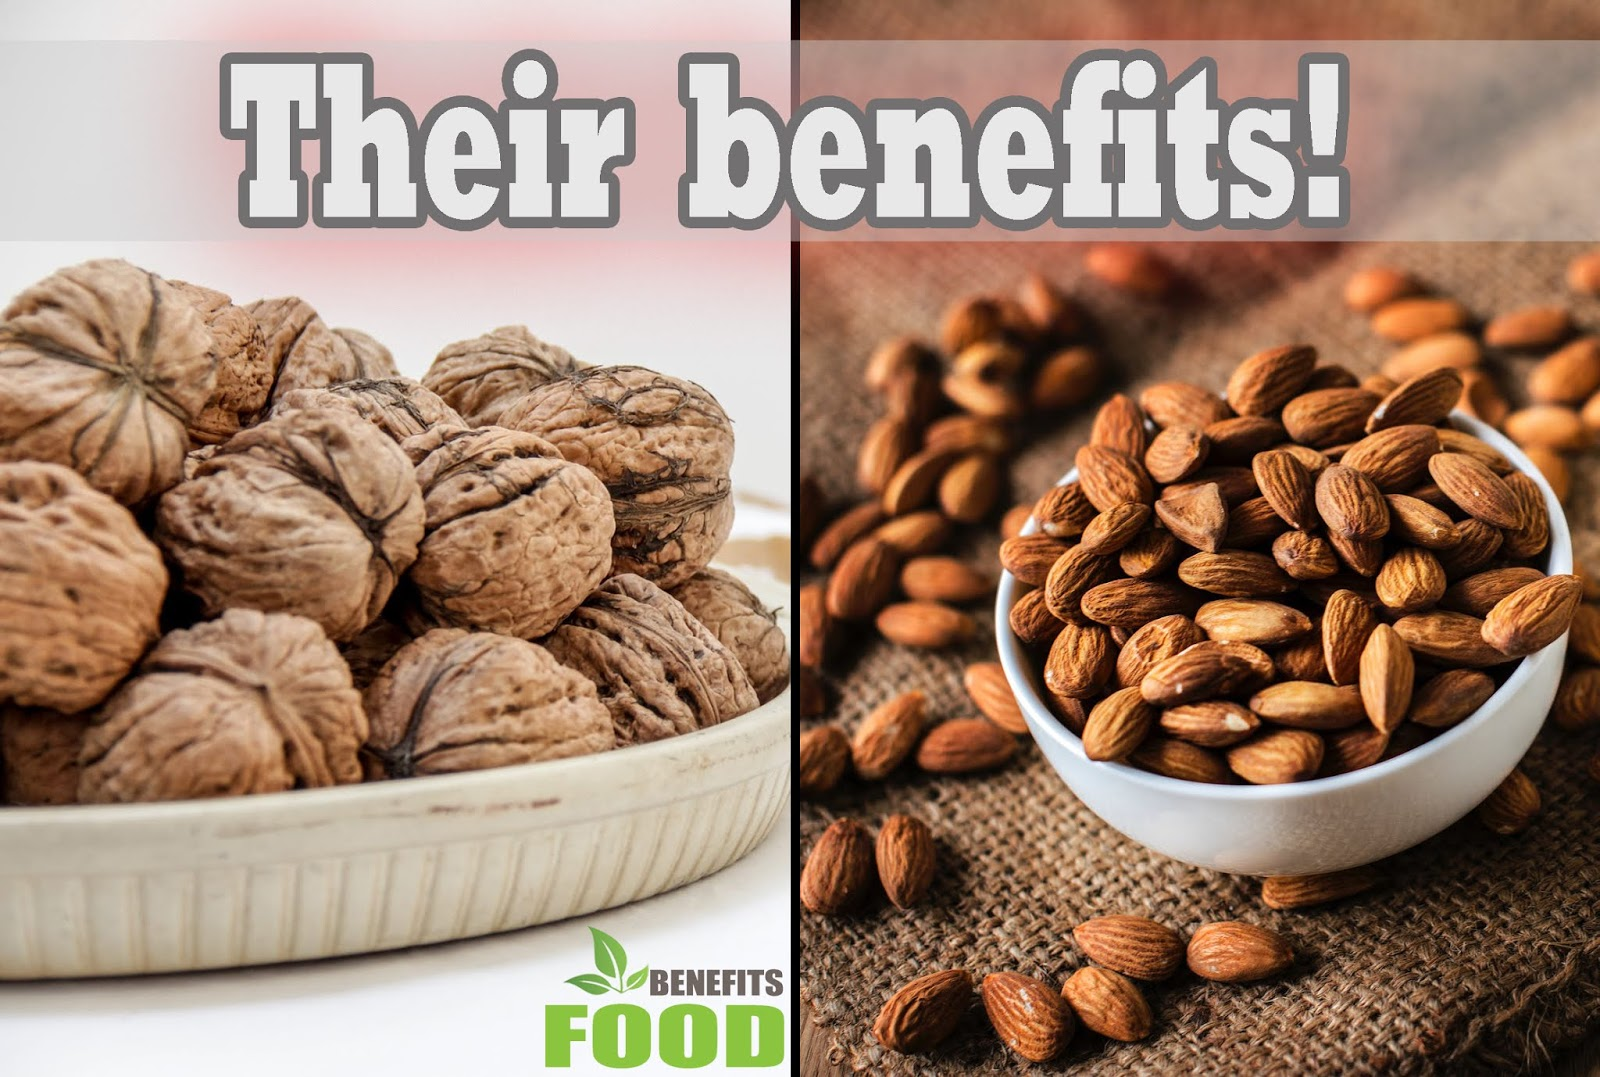 Benefits of walnuts and almonds - Food benefits for human